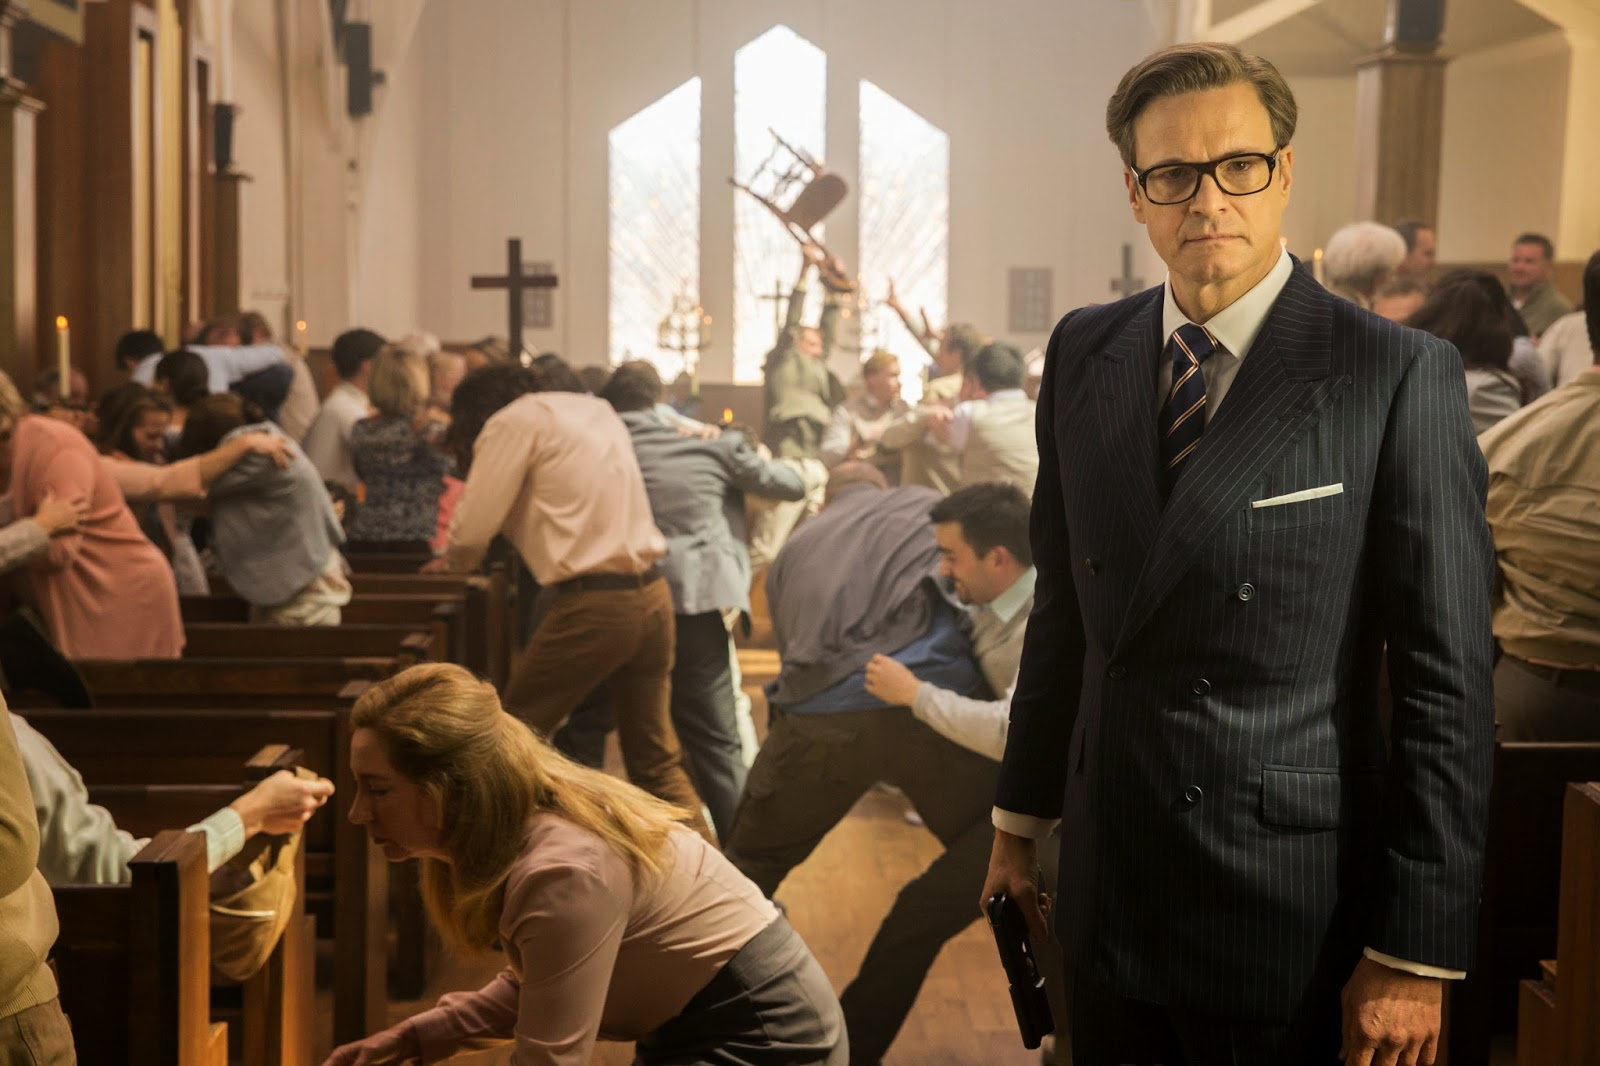 kingsman church scene